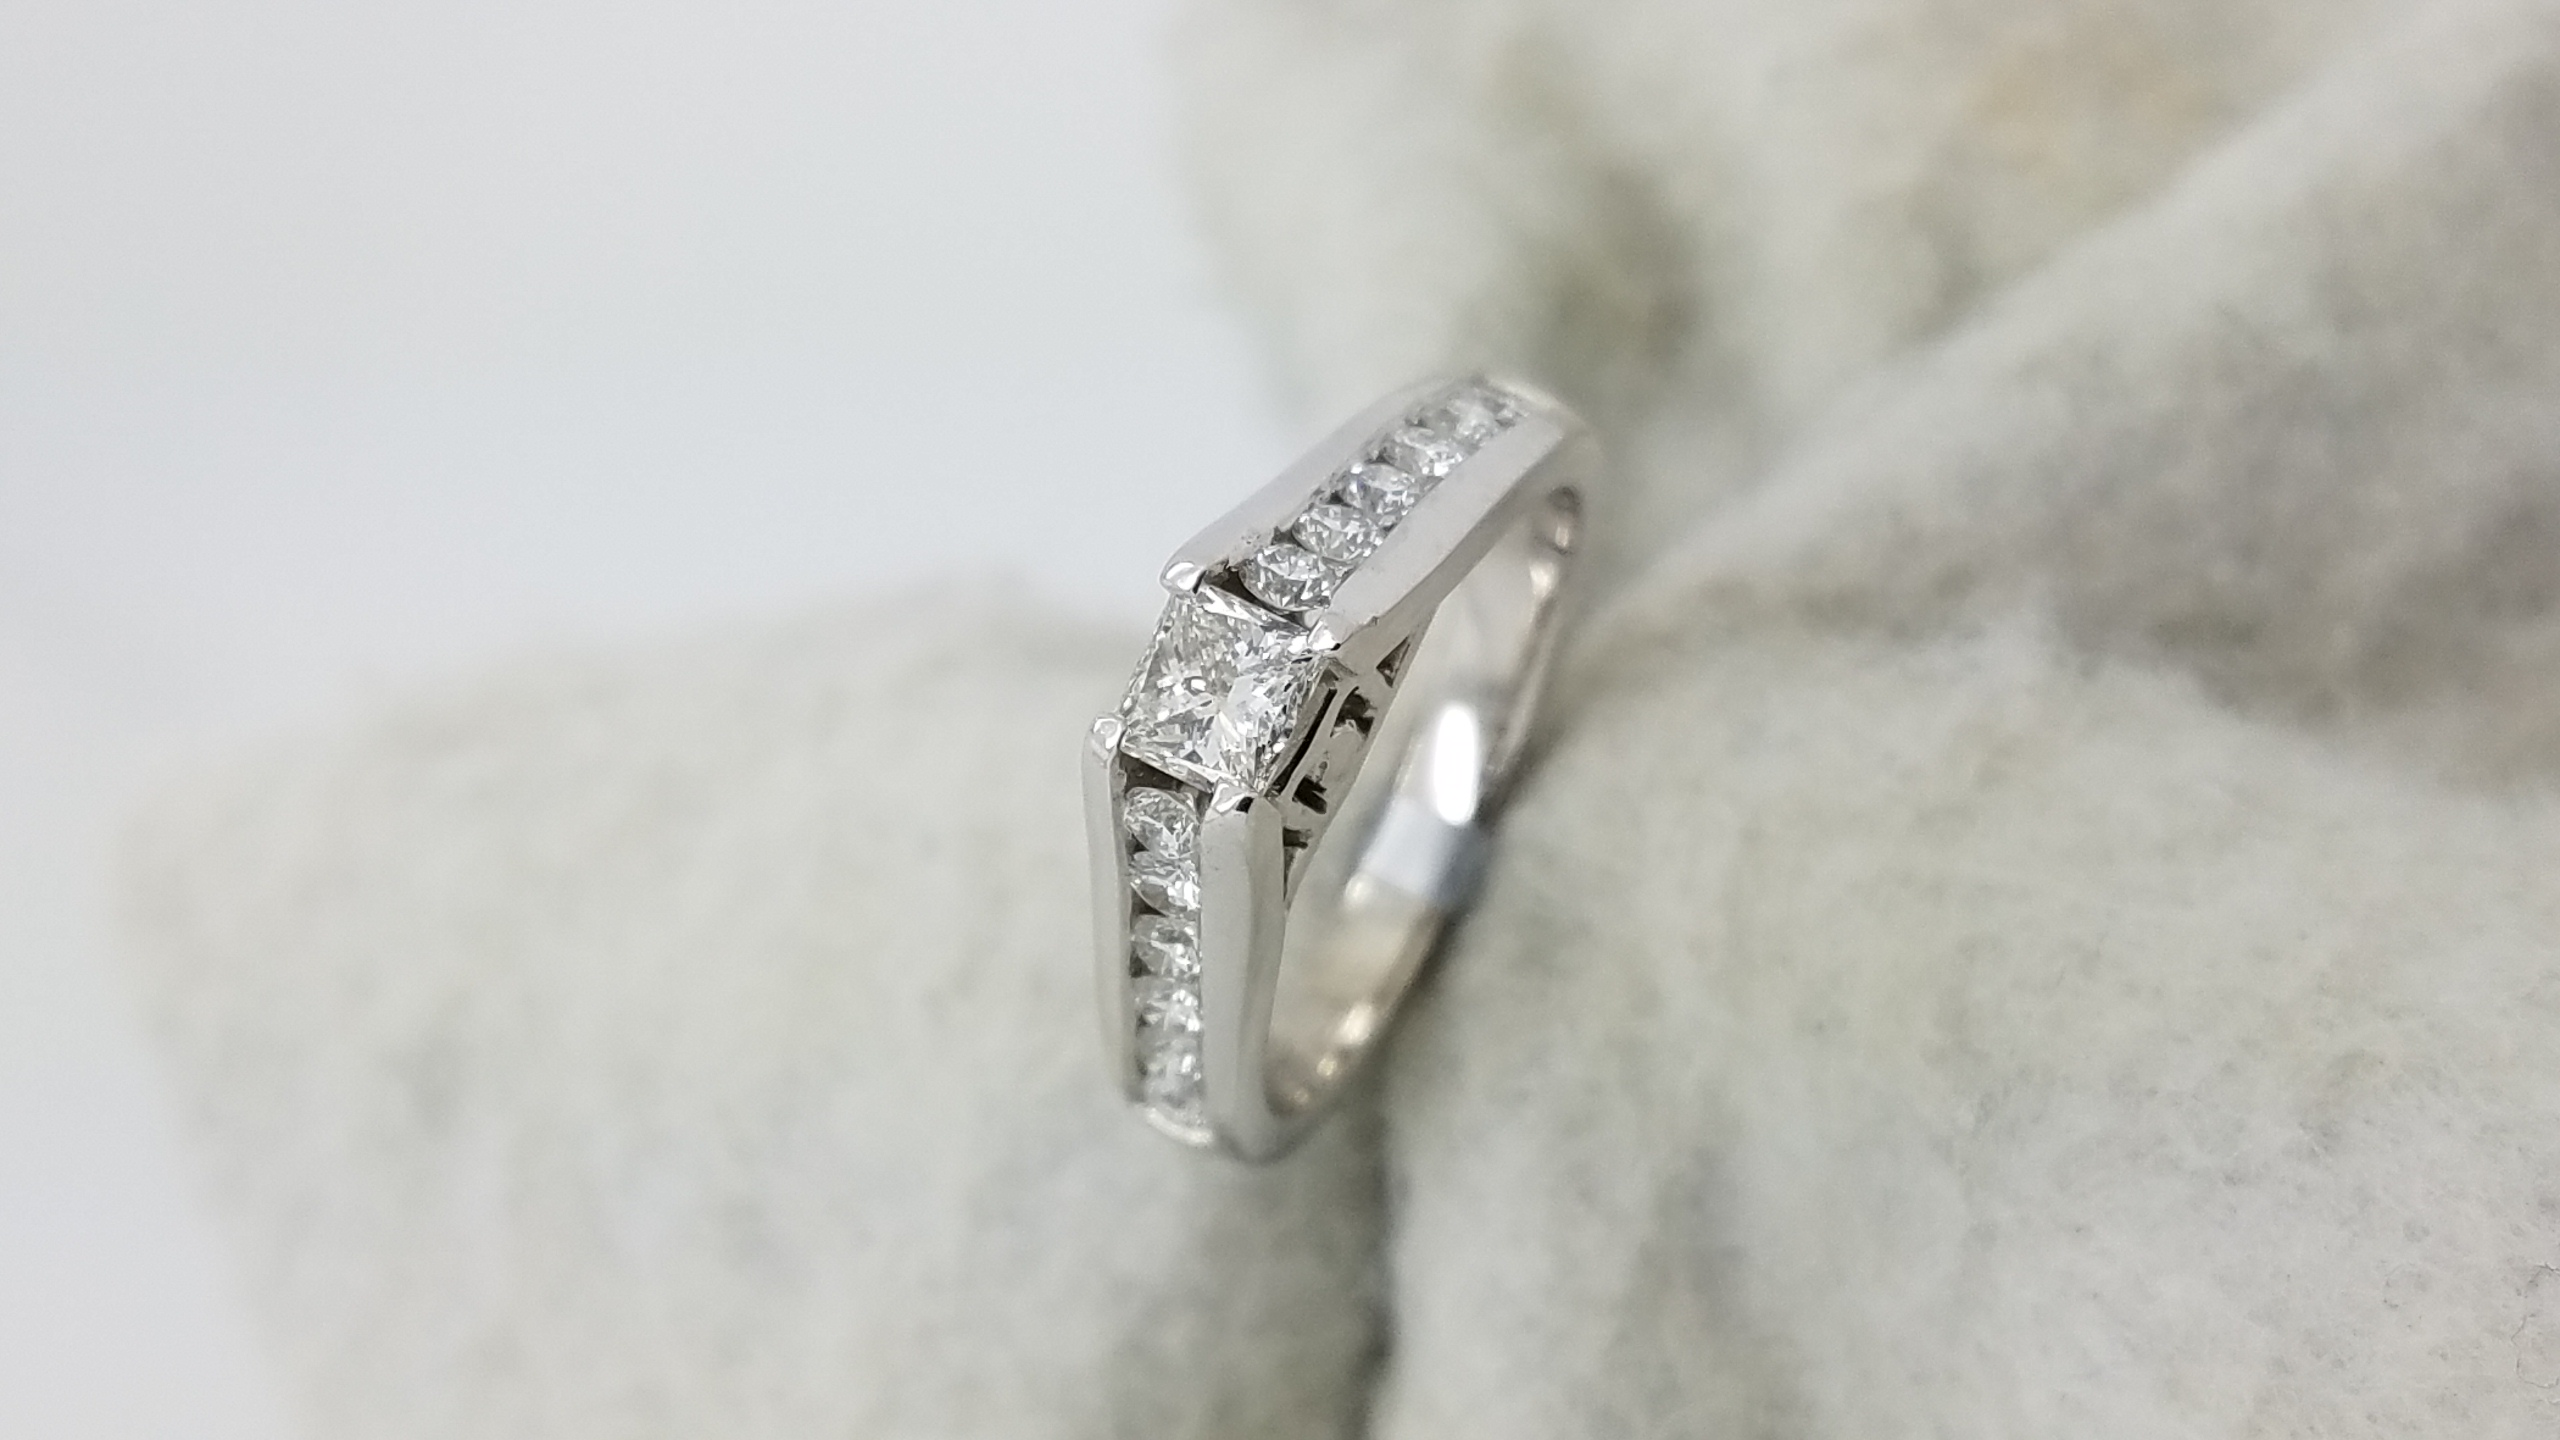 PLAT	W	Channel band	0.95	ct.	PR,R	Cut	Diamond	G	VS1	4-prong	Solitaire with Accents	Engagement-Ring